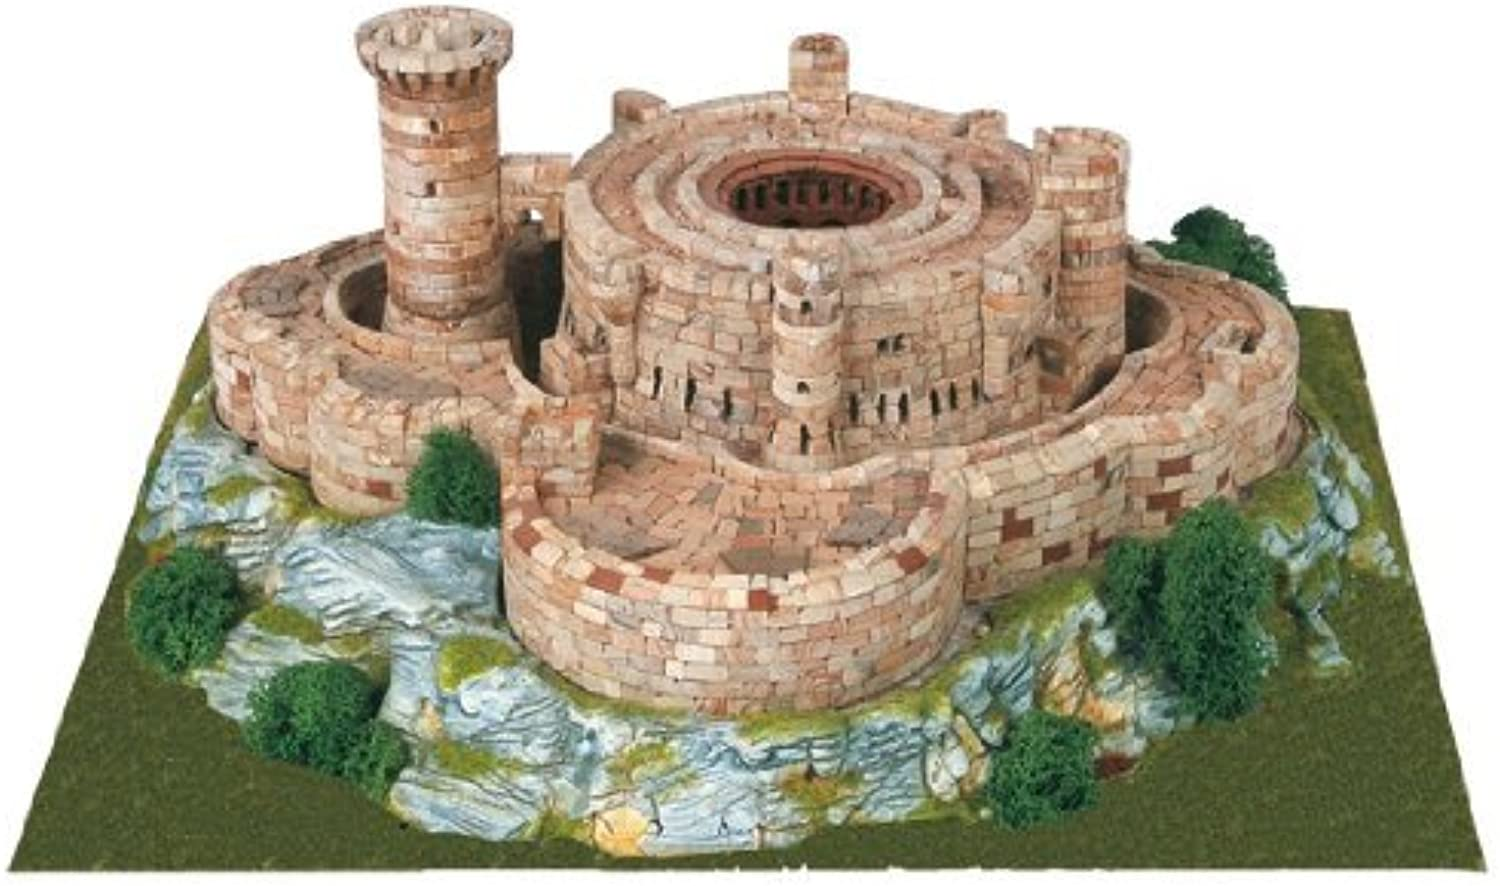 Bellver Castle Model Kit by Aedes-Ars